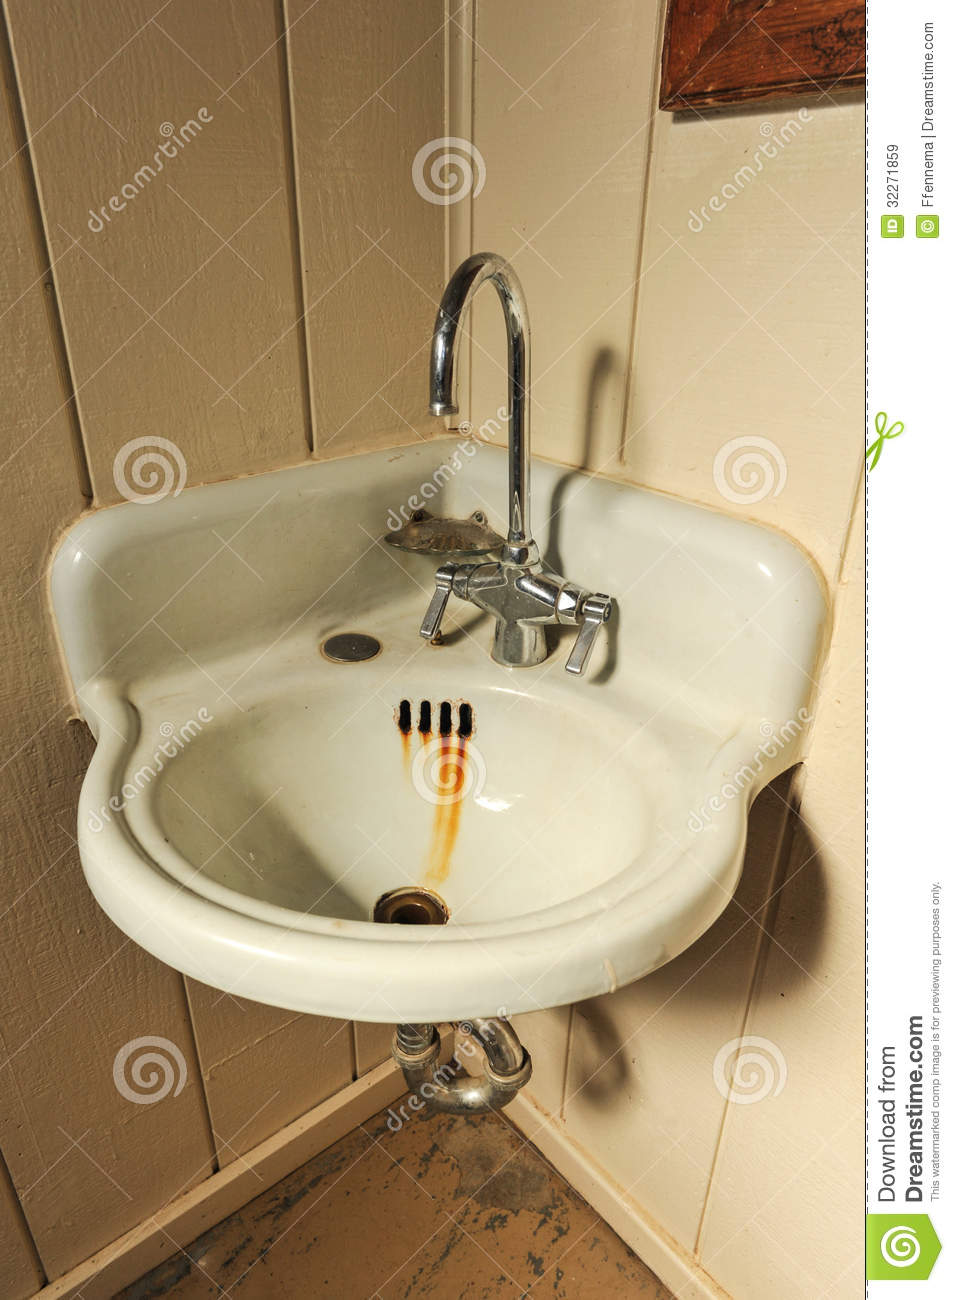 Old Sink With Rusty Basin In Corner Stock Image  Image